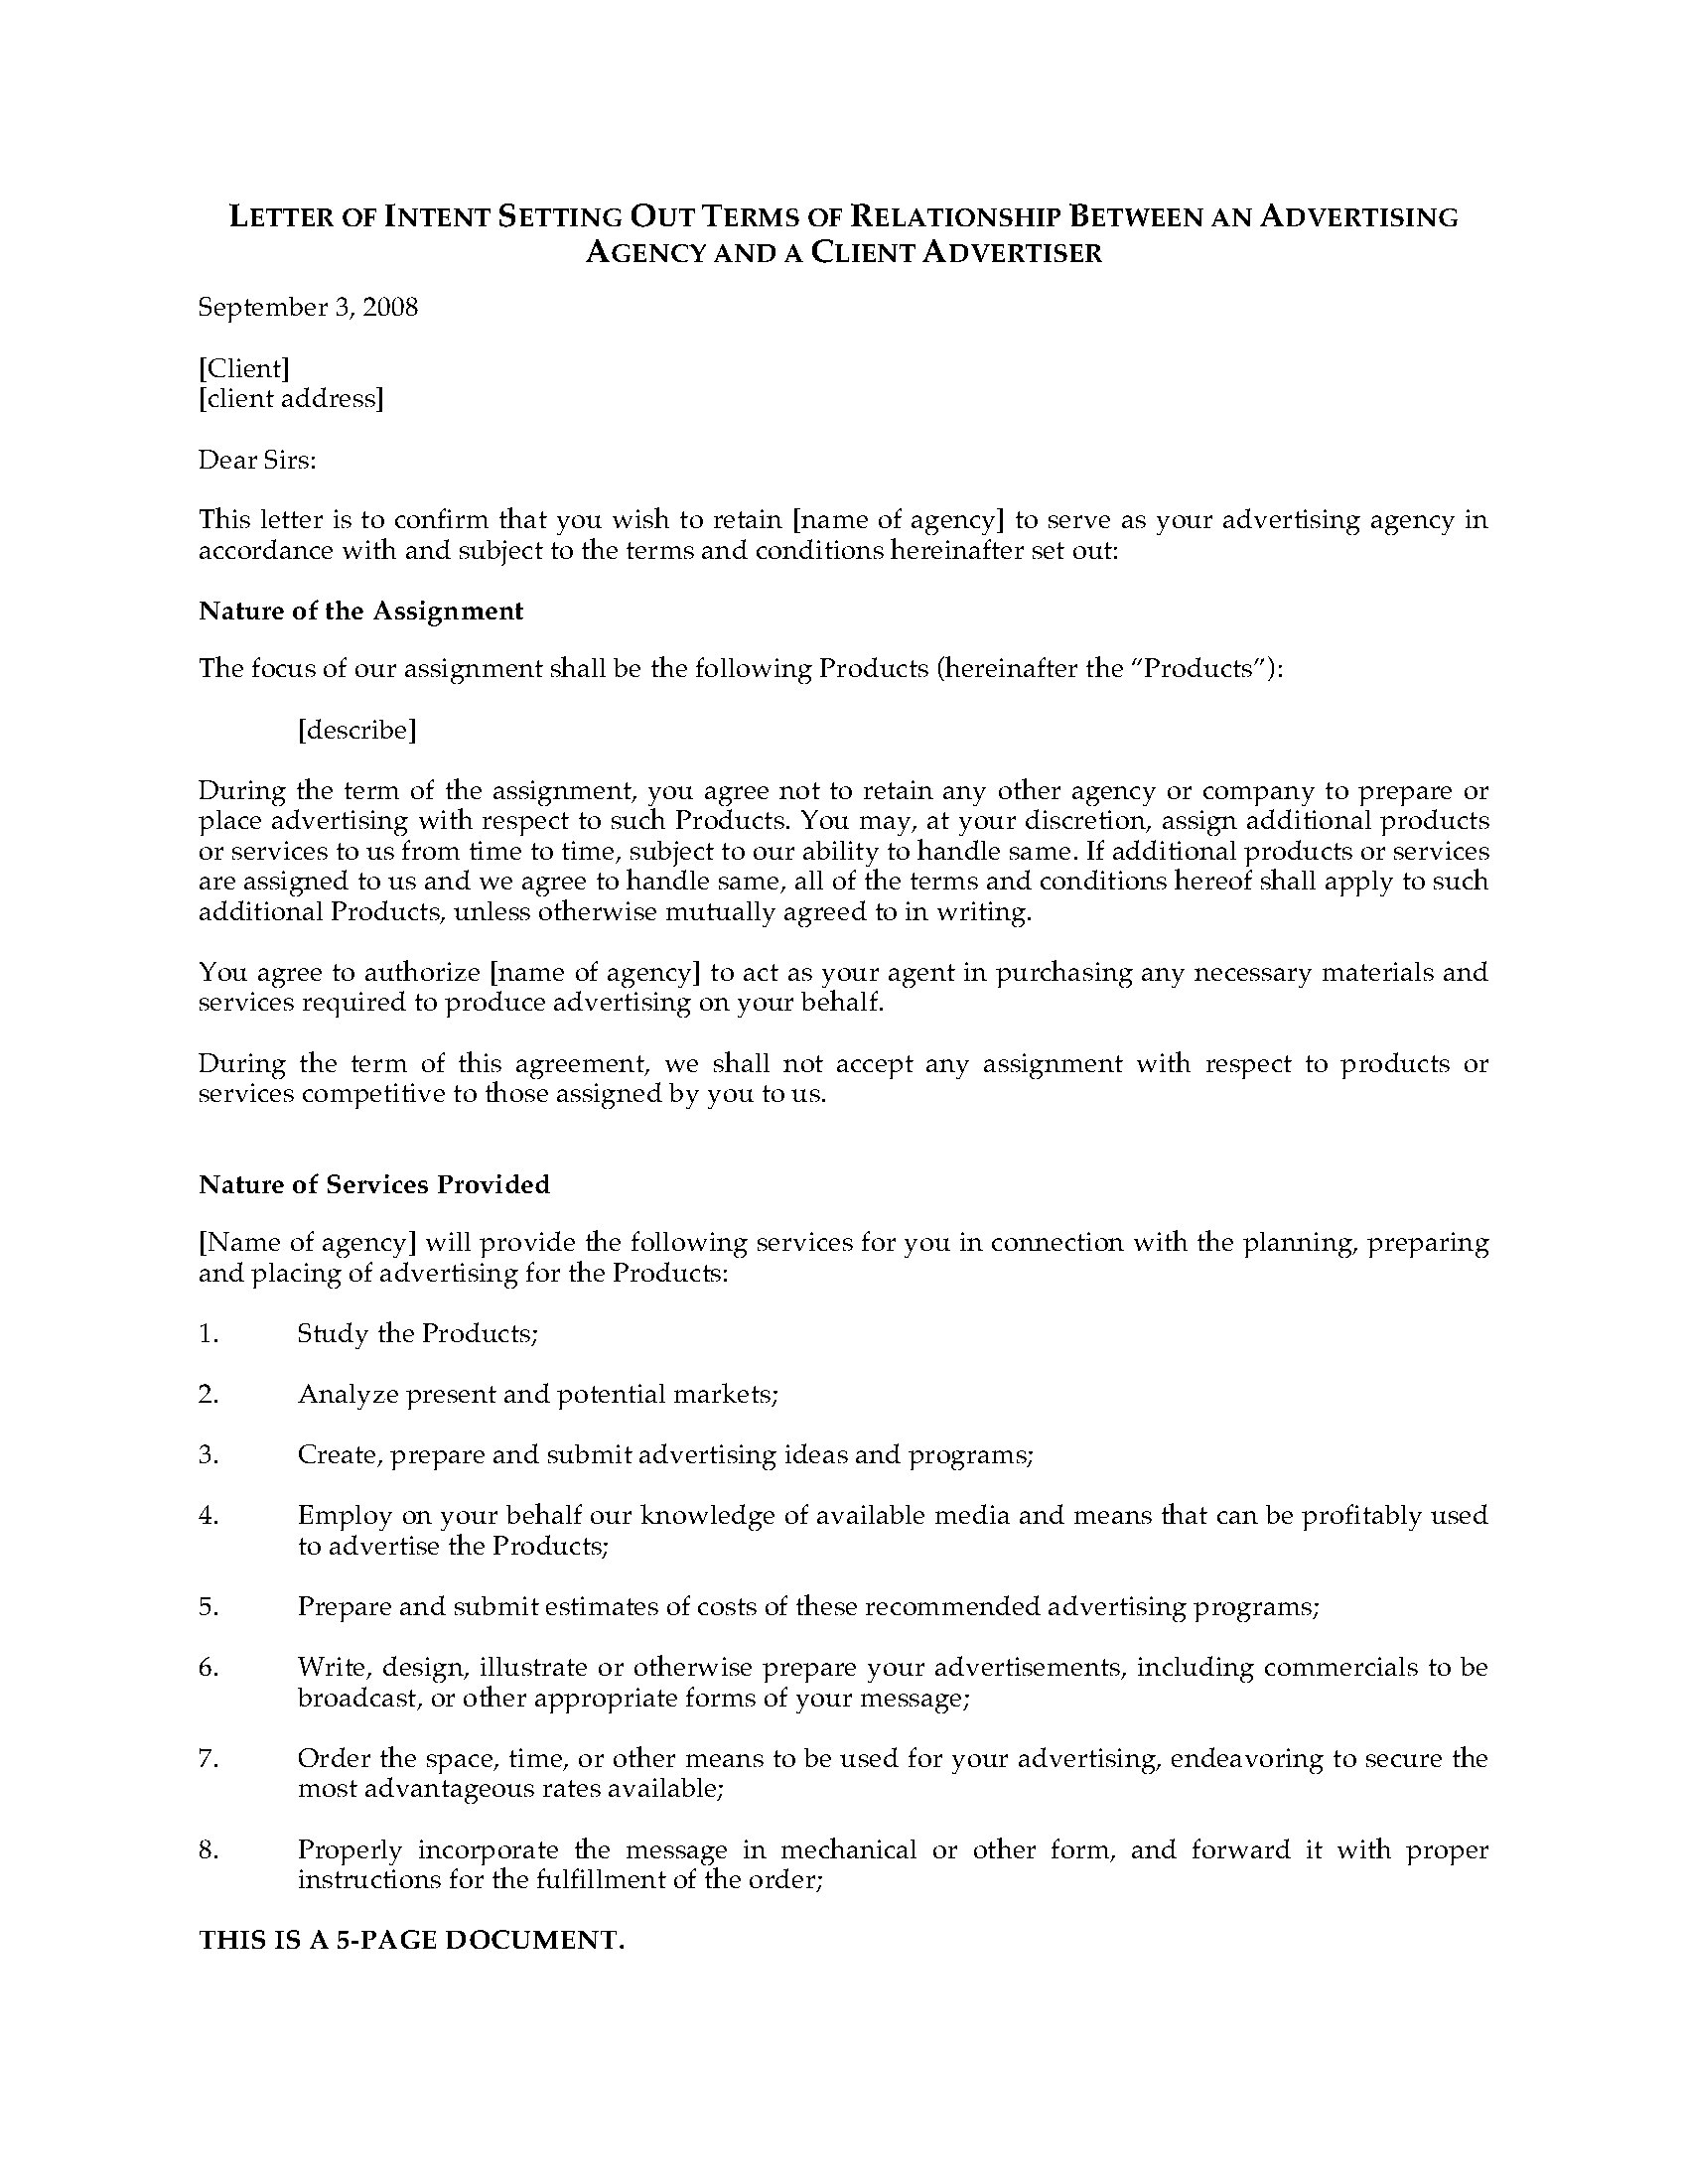 Letter Of Intent To Hire Advertising Agency Legal Forms